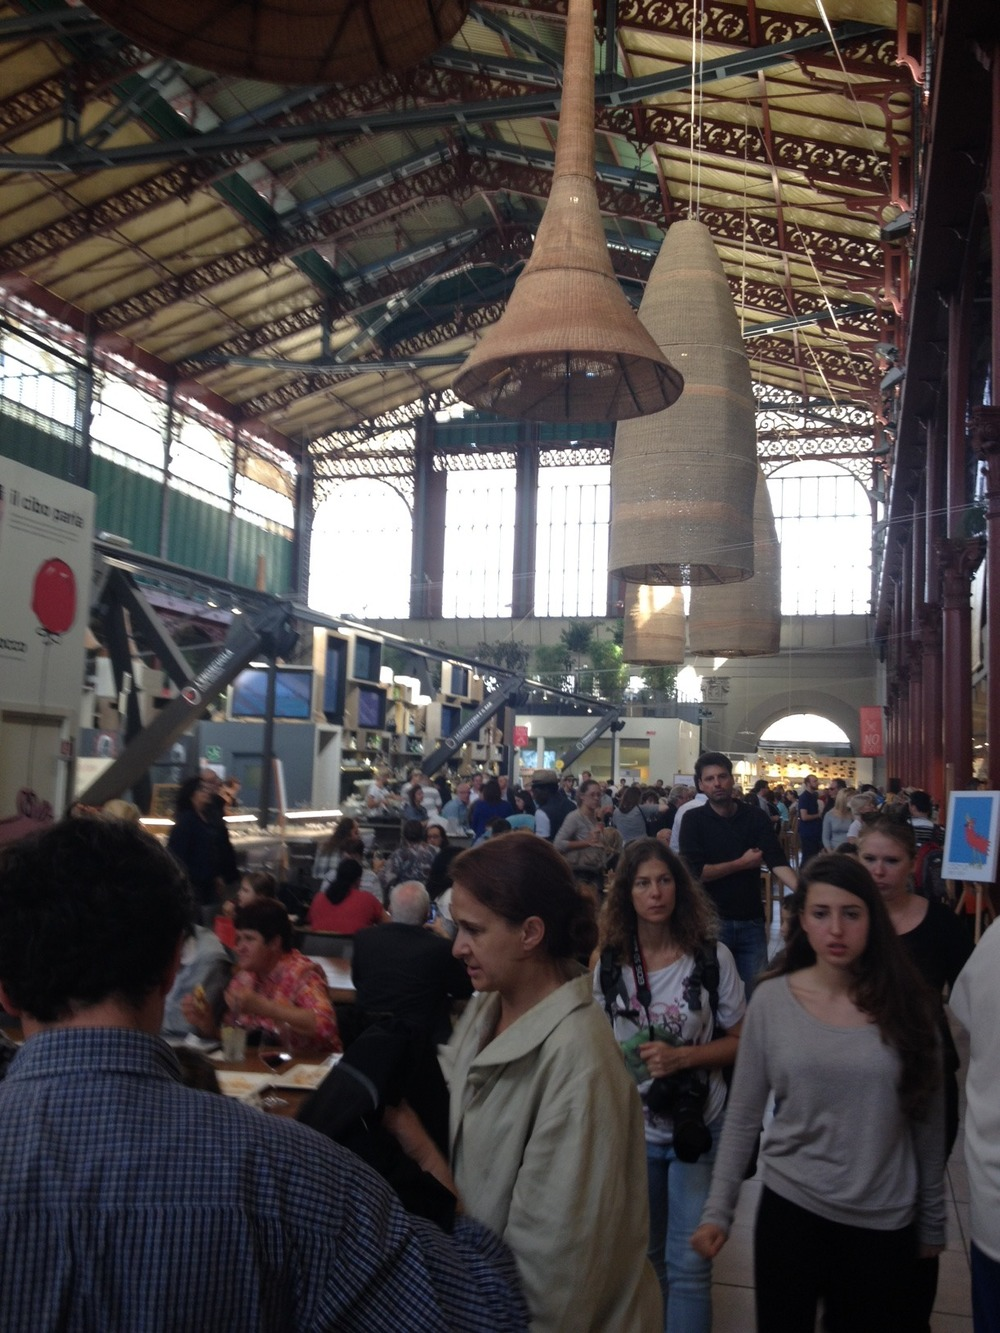 The indoor market is more like a food court in a mall or office building than a farmers' market.